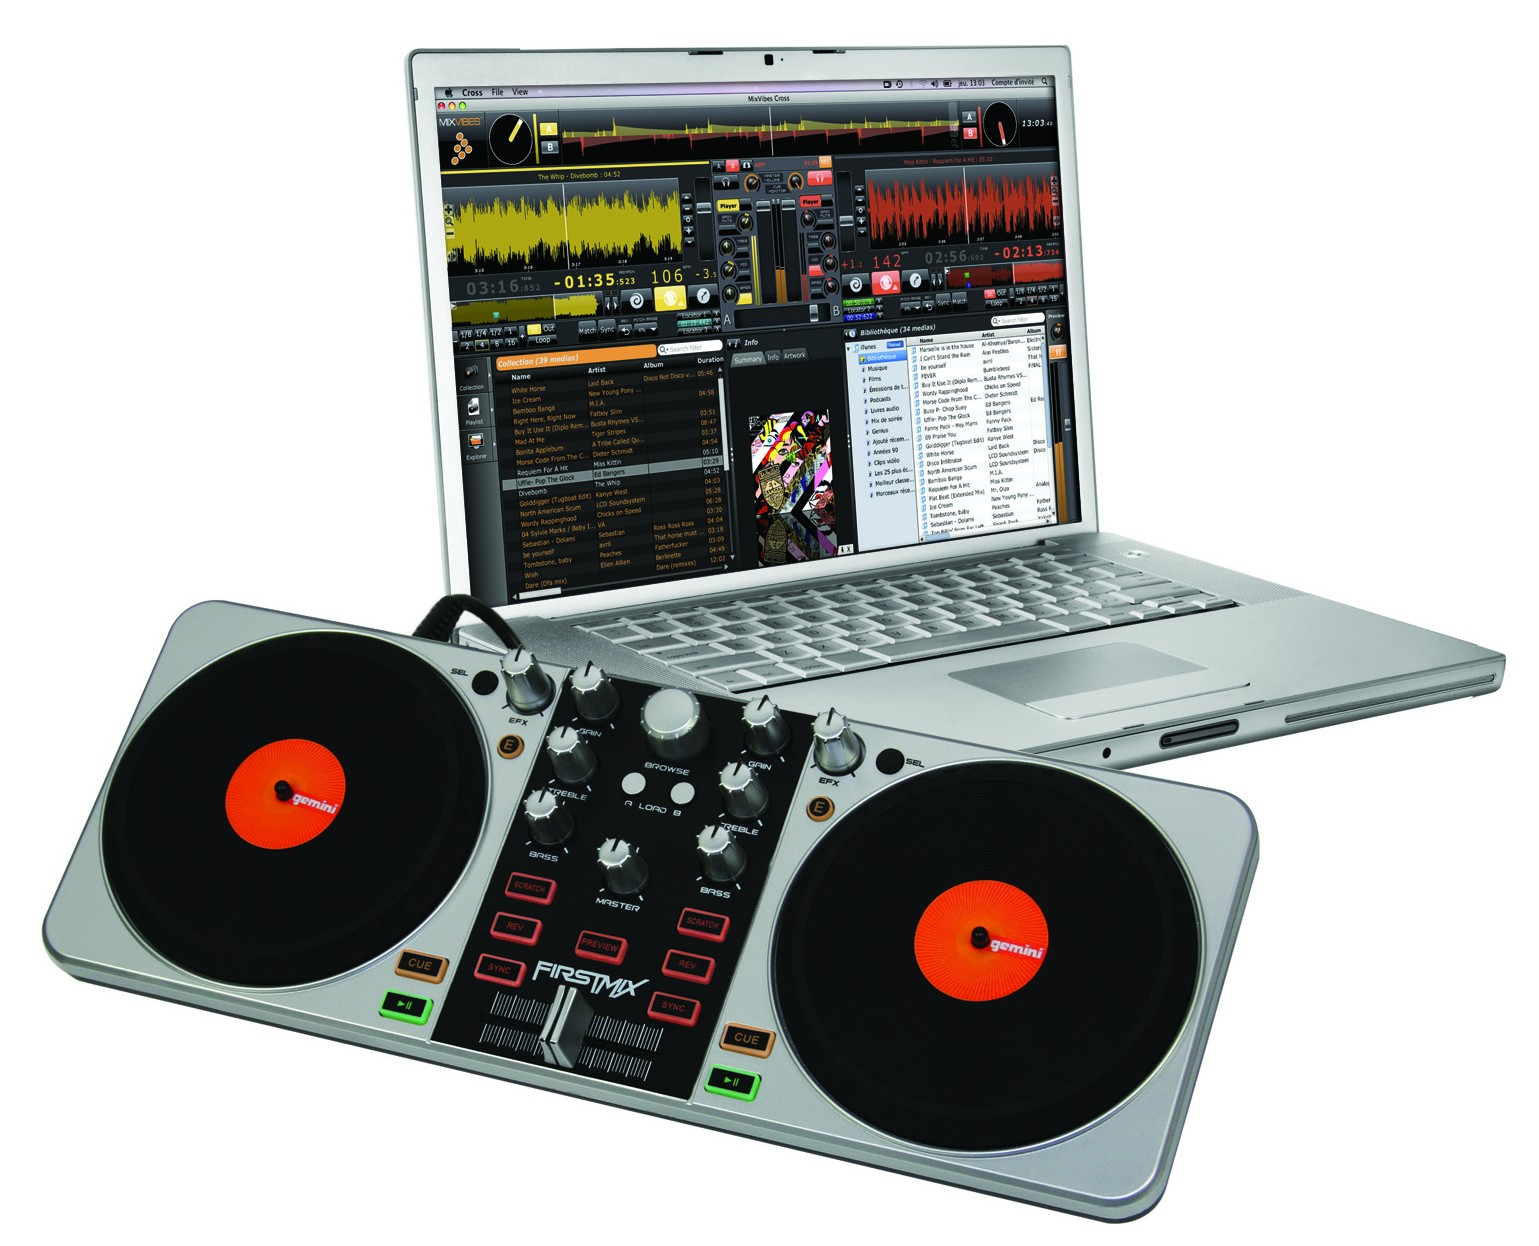 DJ TechTools - search for midi maps by DJ software and controller